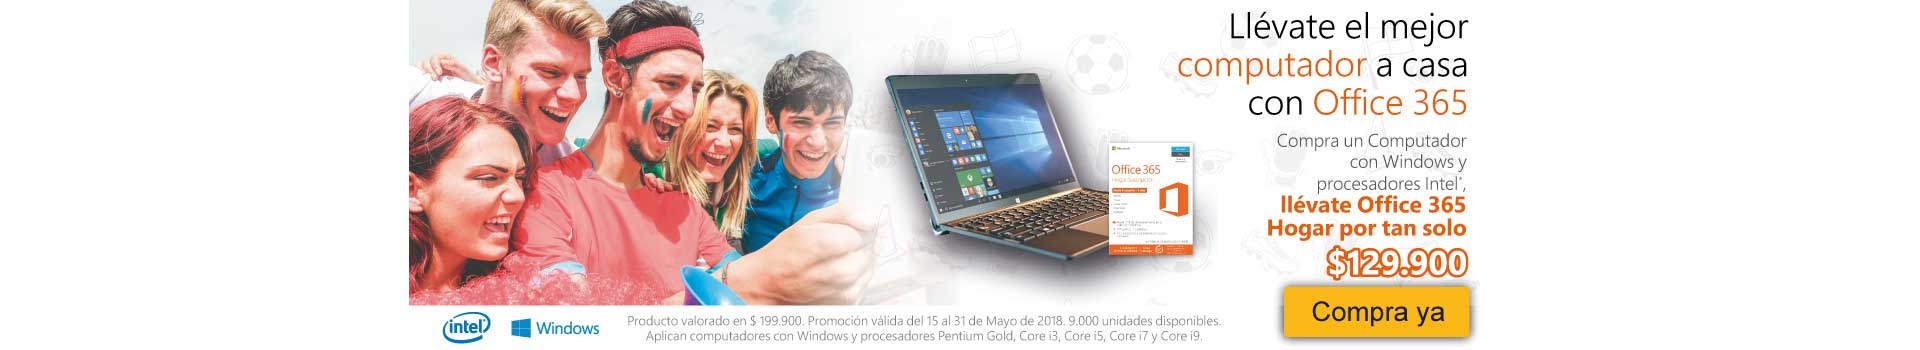 AK-KT-BCAT-5-accesorios-PP---Office365-software-May16